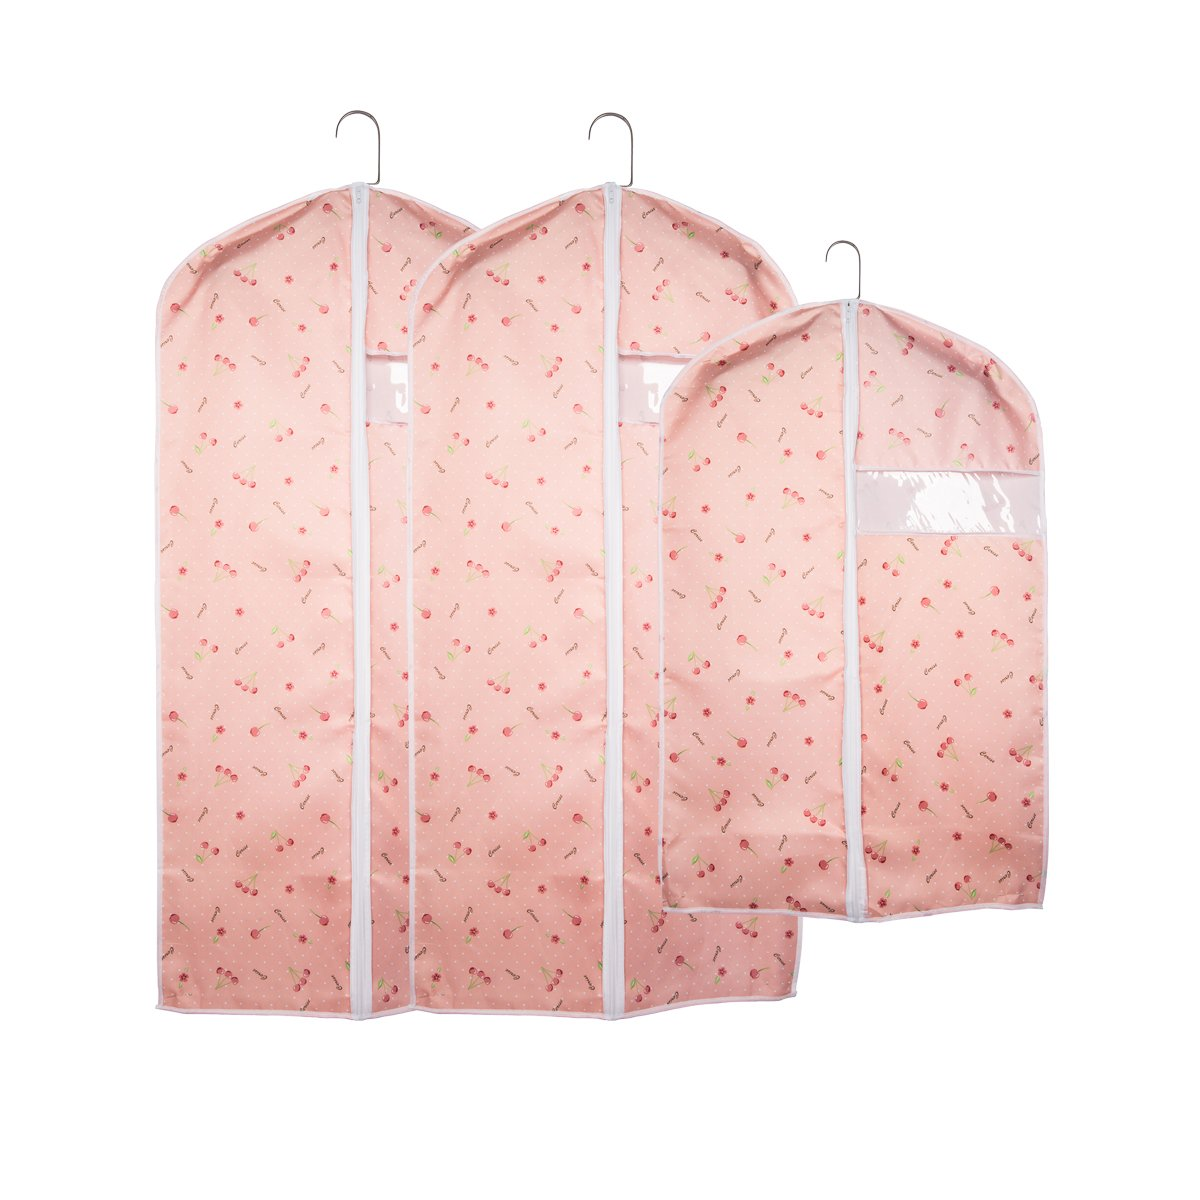 04315ccb7983 Cheap Garment Of Skin, find Garment Of Skin deals on line at Alibaba.com